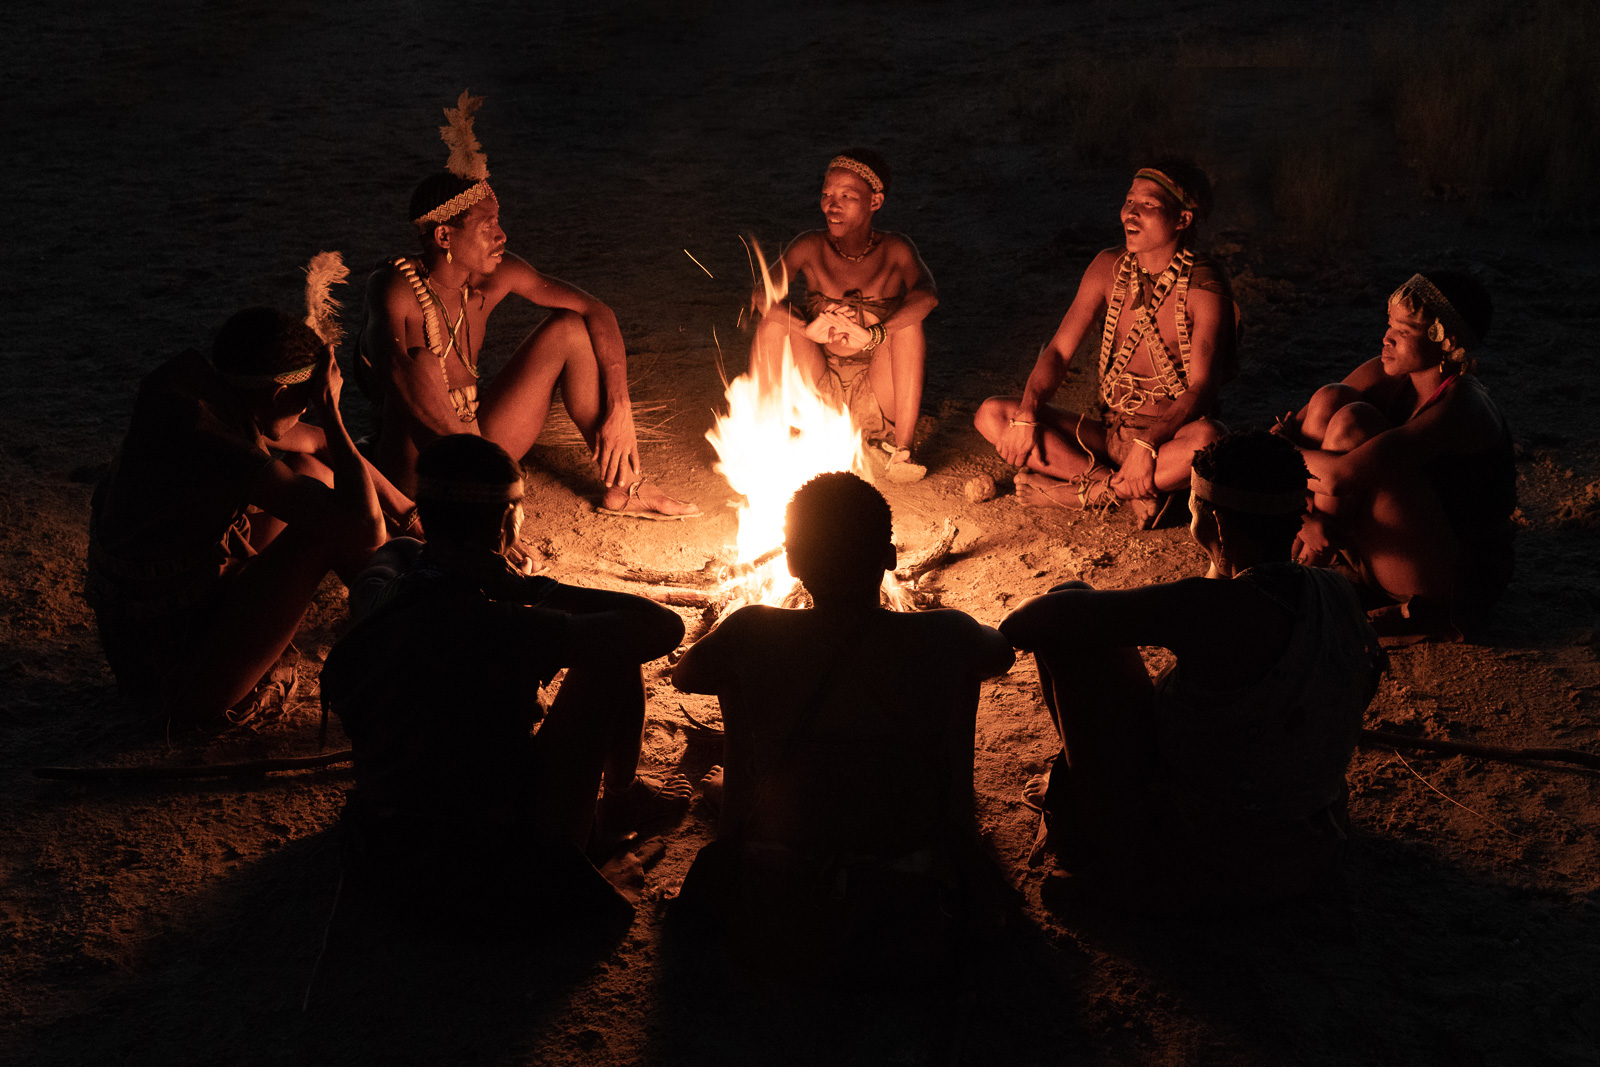 muench-workshops-san-bushmen.jpg